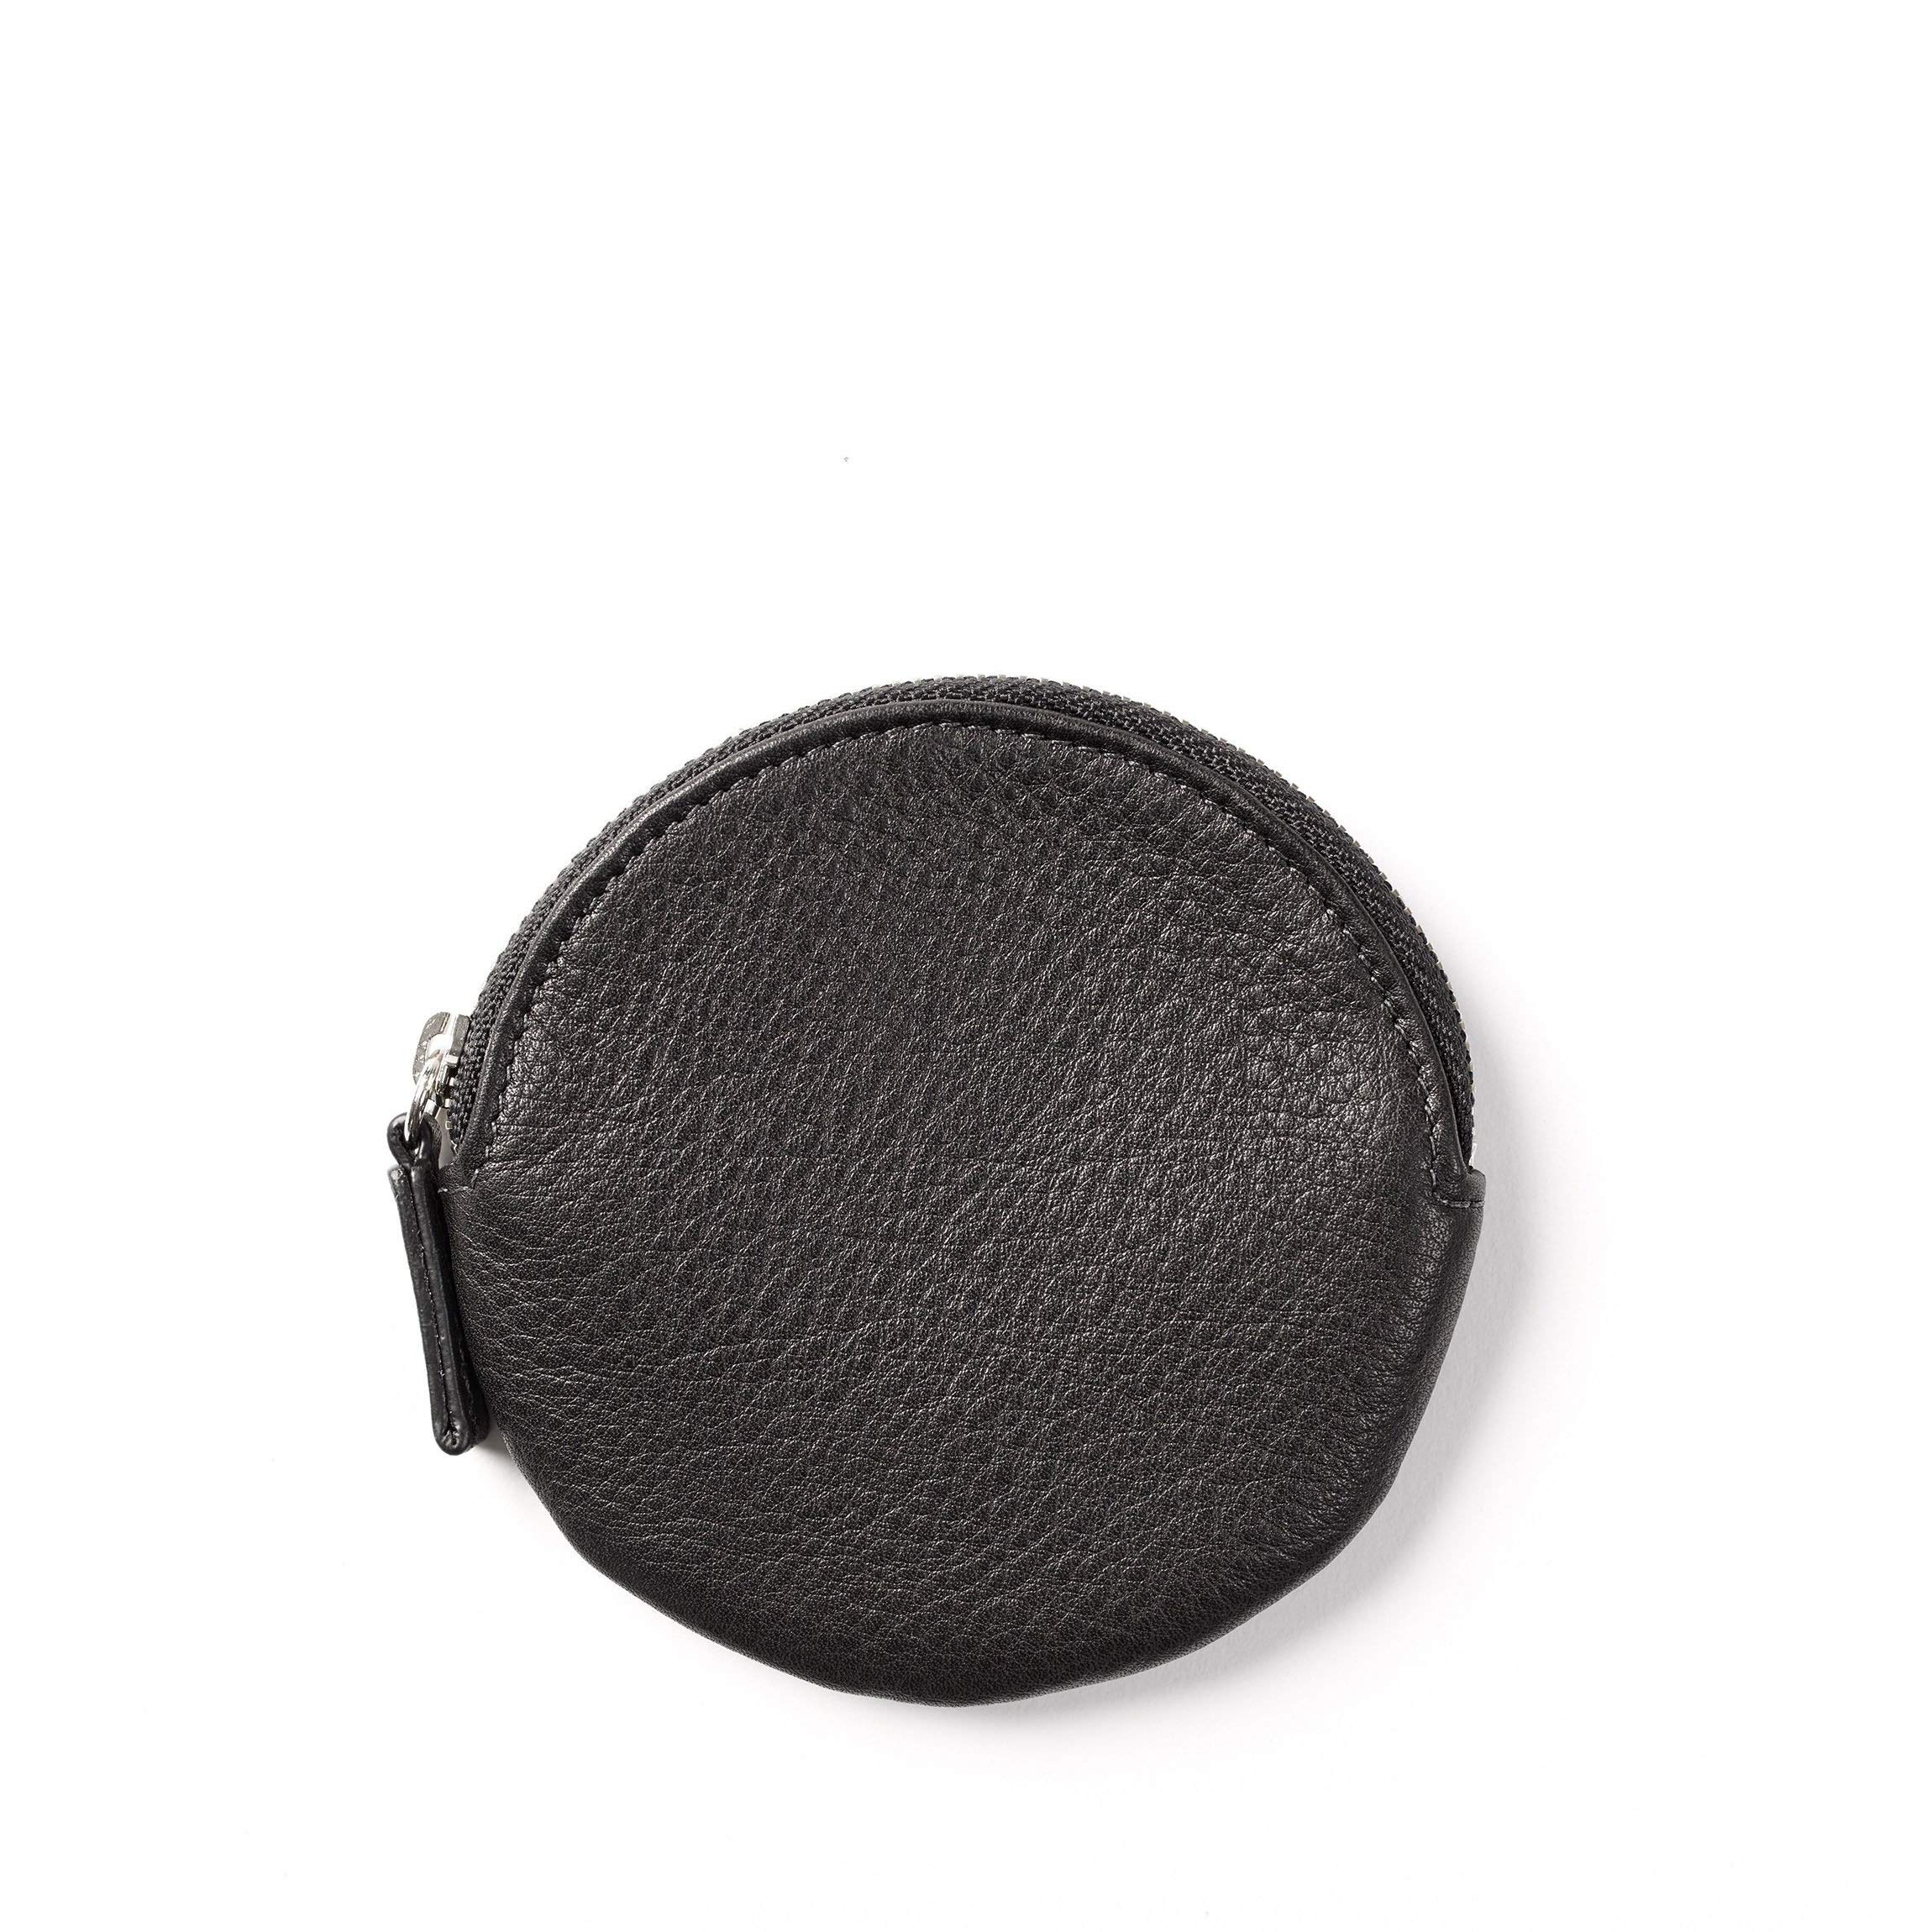 Round Coin Pouch - Full Grain Leather - Black Onyx (black)